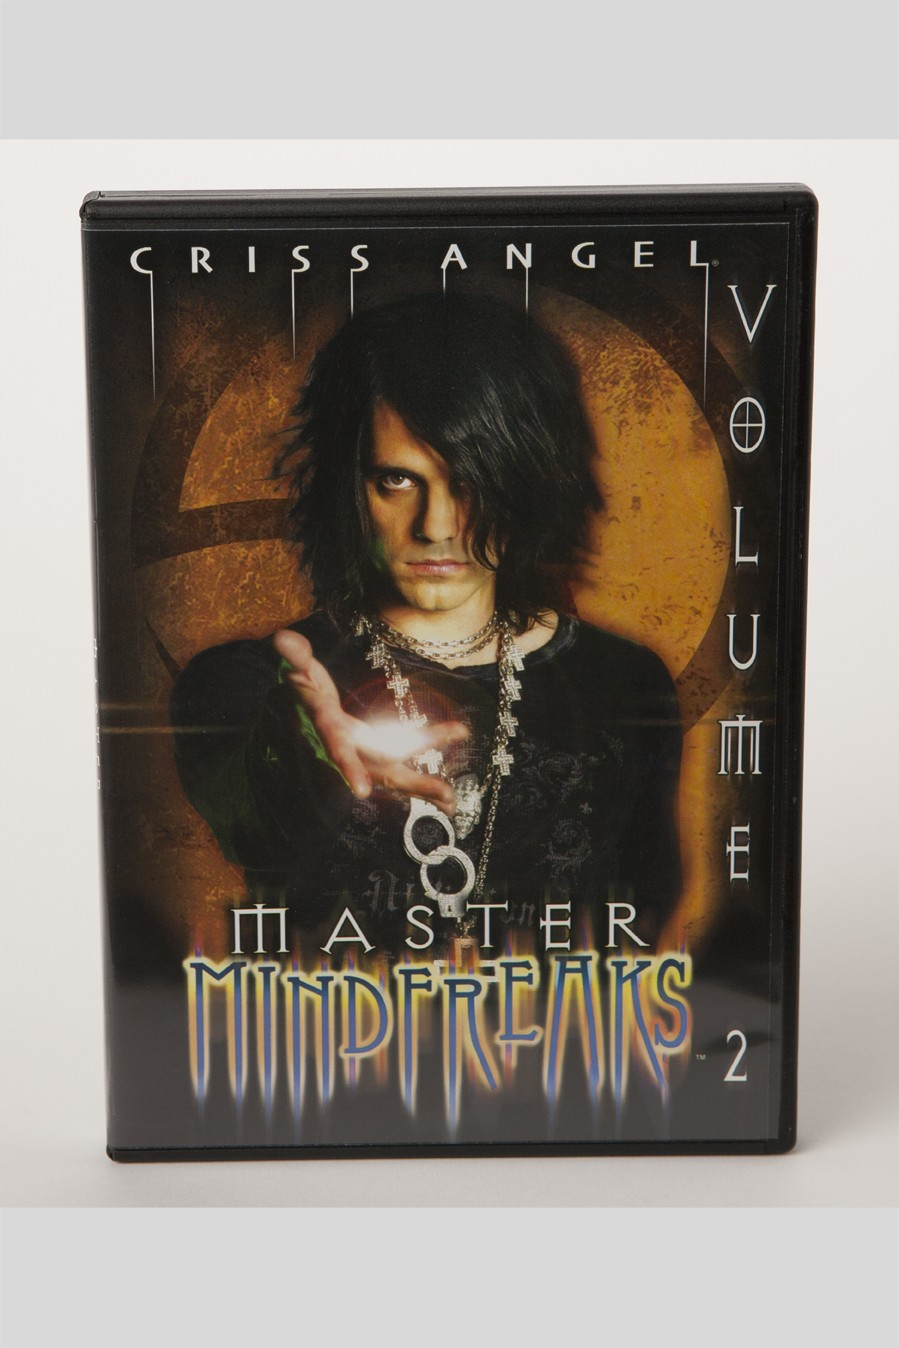 DVD CRISS ANGEL MASTER MINDFREAKS VOL 2